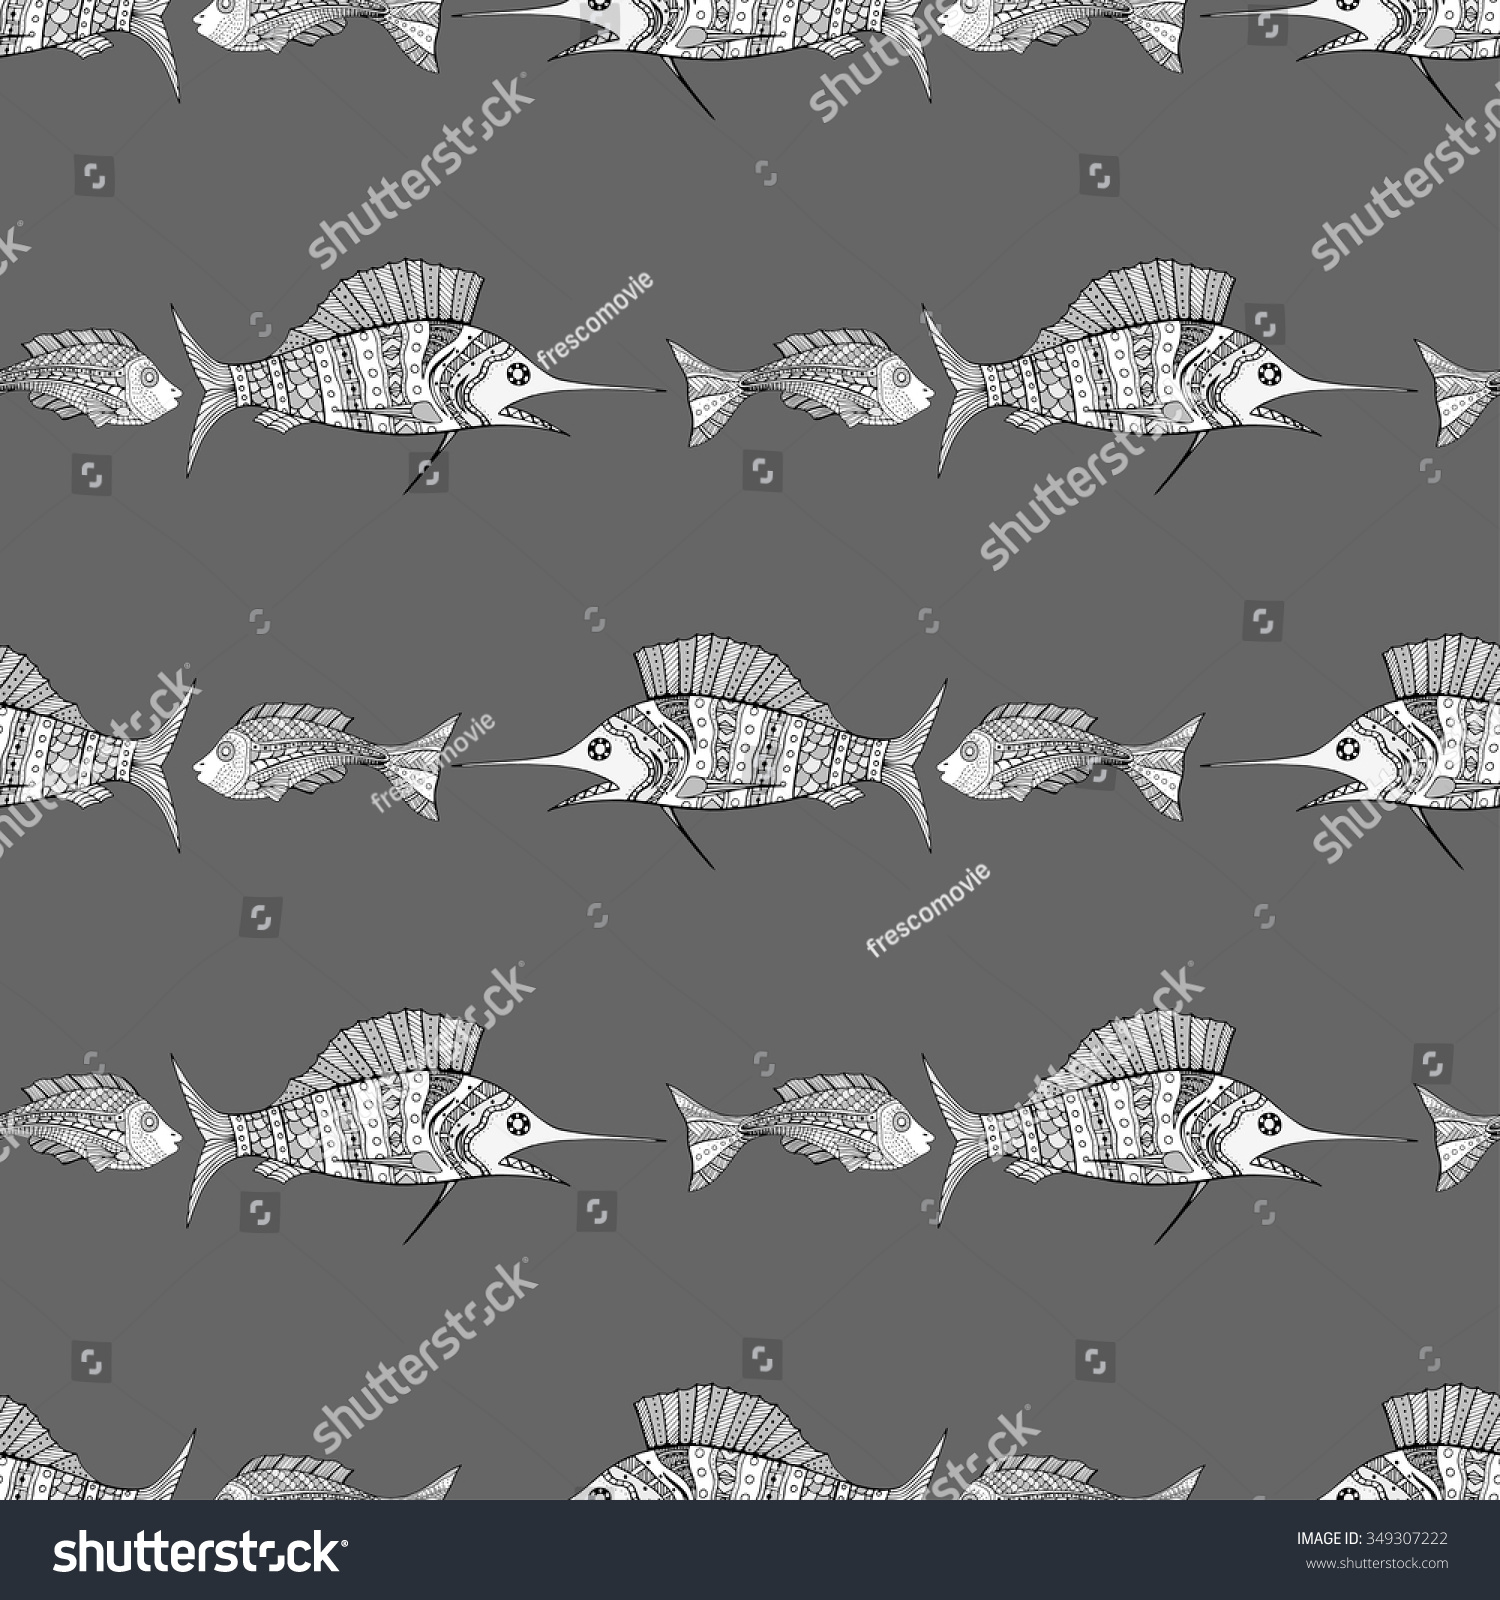 Seamless fish background vector illustration image stock for Seamless fish tank